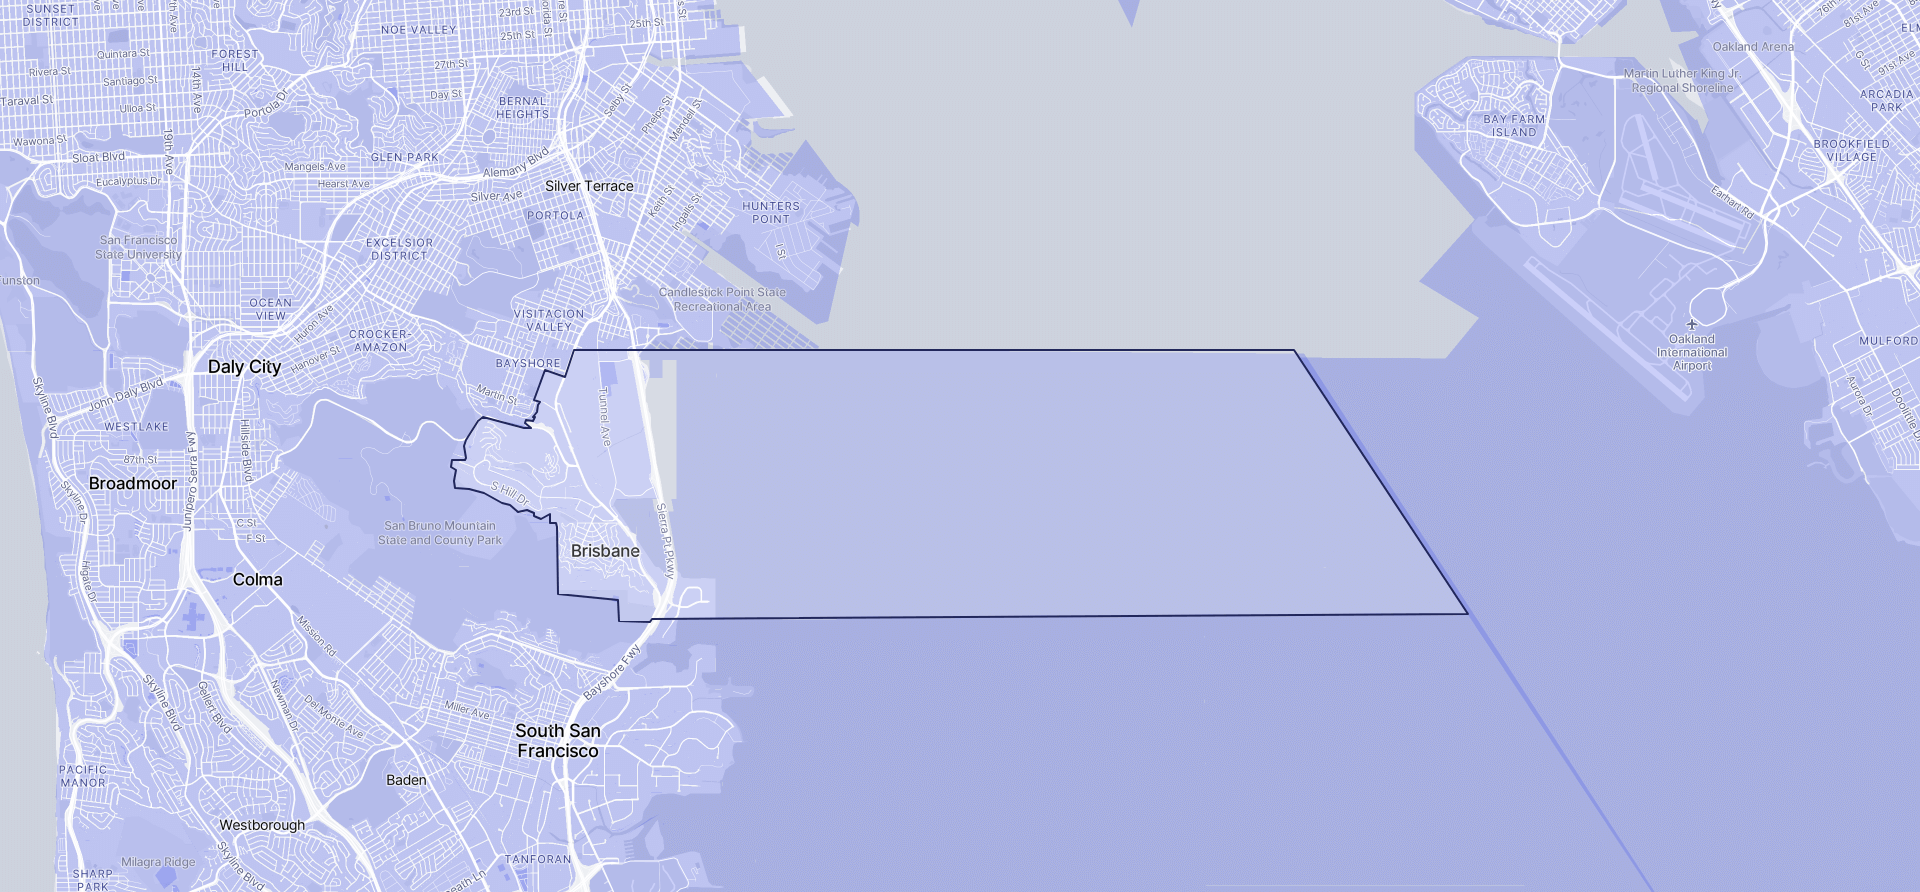 Image of Brisbane boundaries on a map.